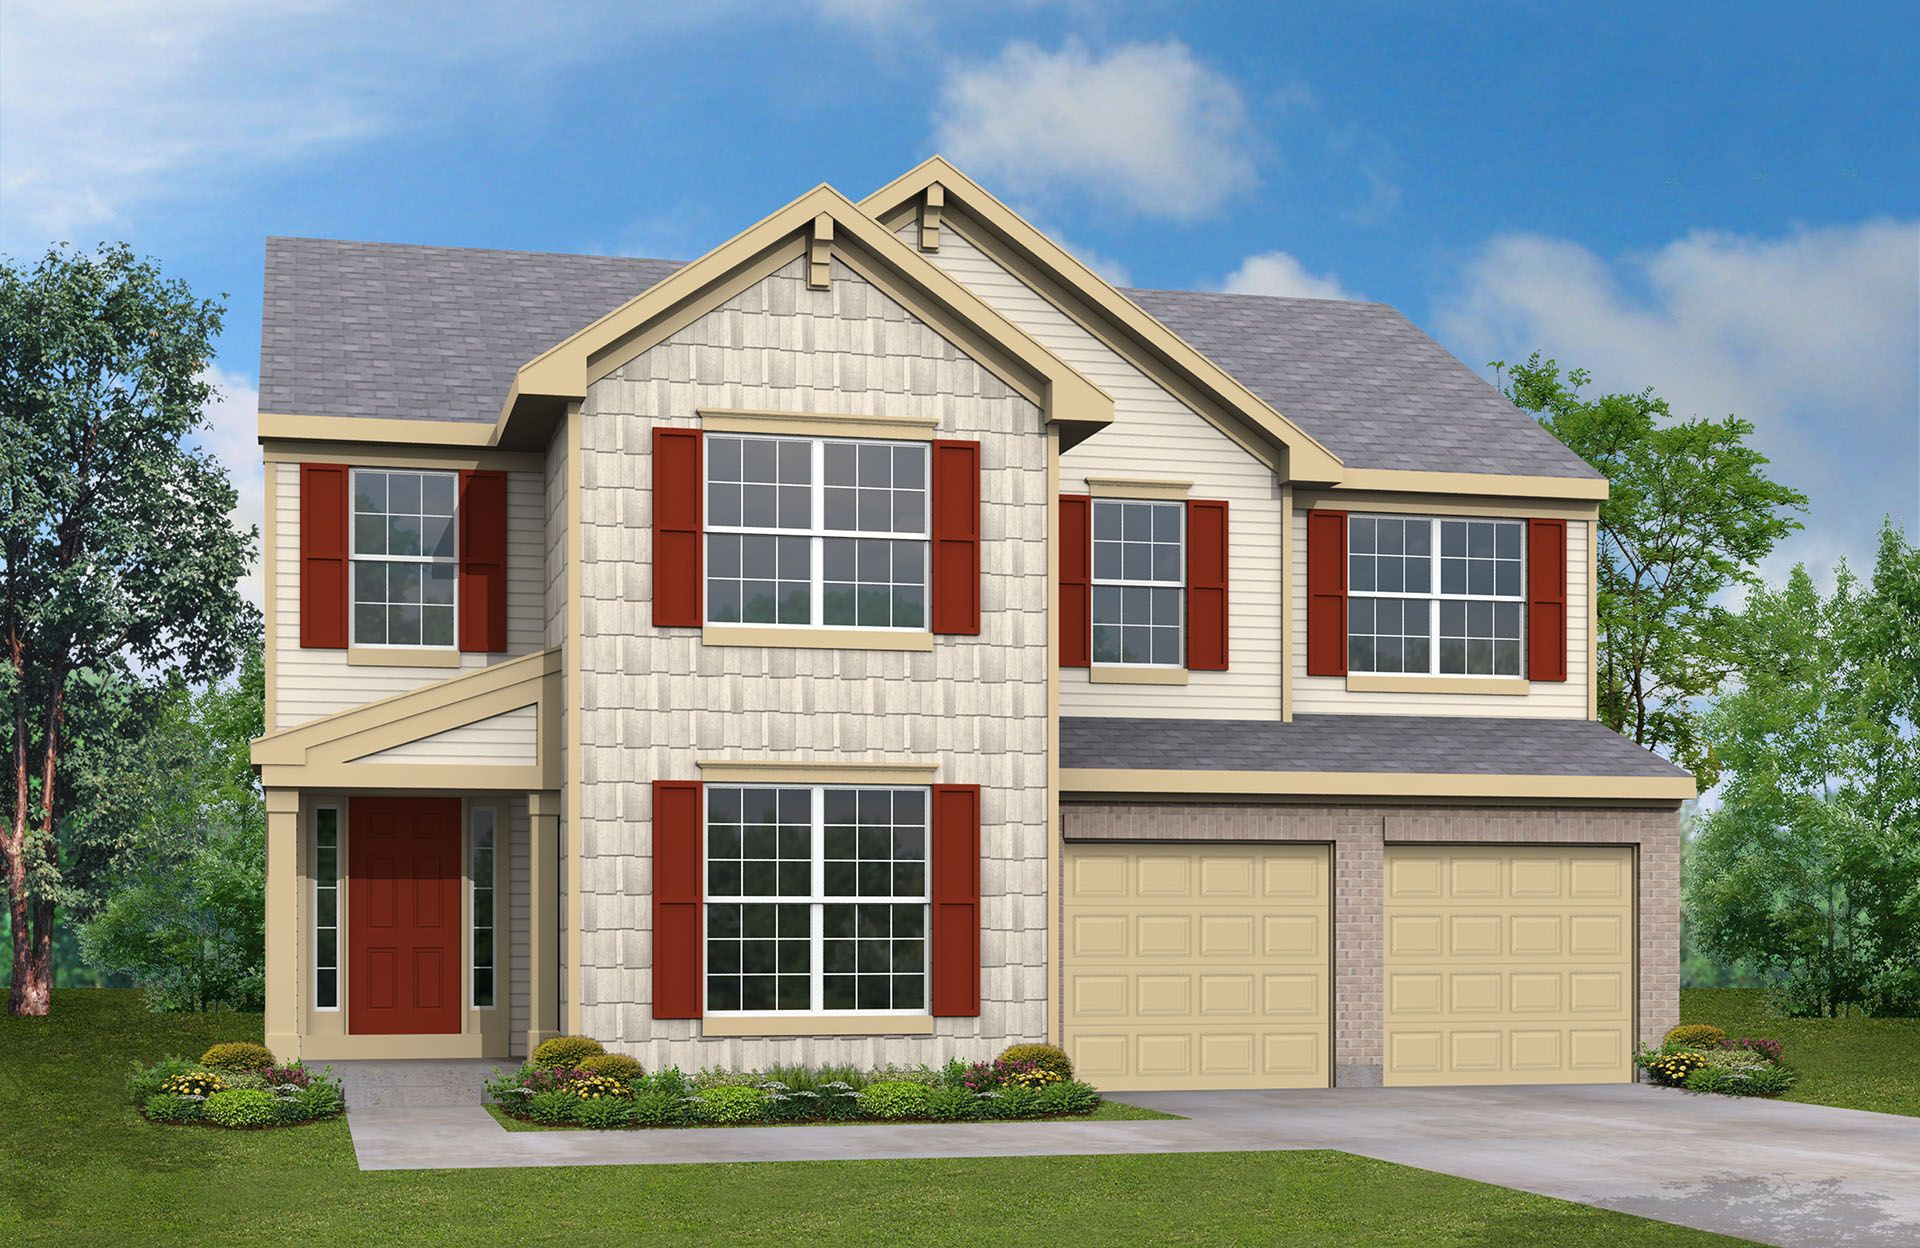 Villages of Daybreak Community: Villages Of Daybreak by Drees Homes